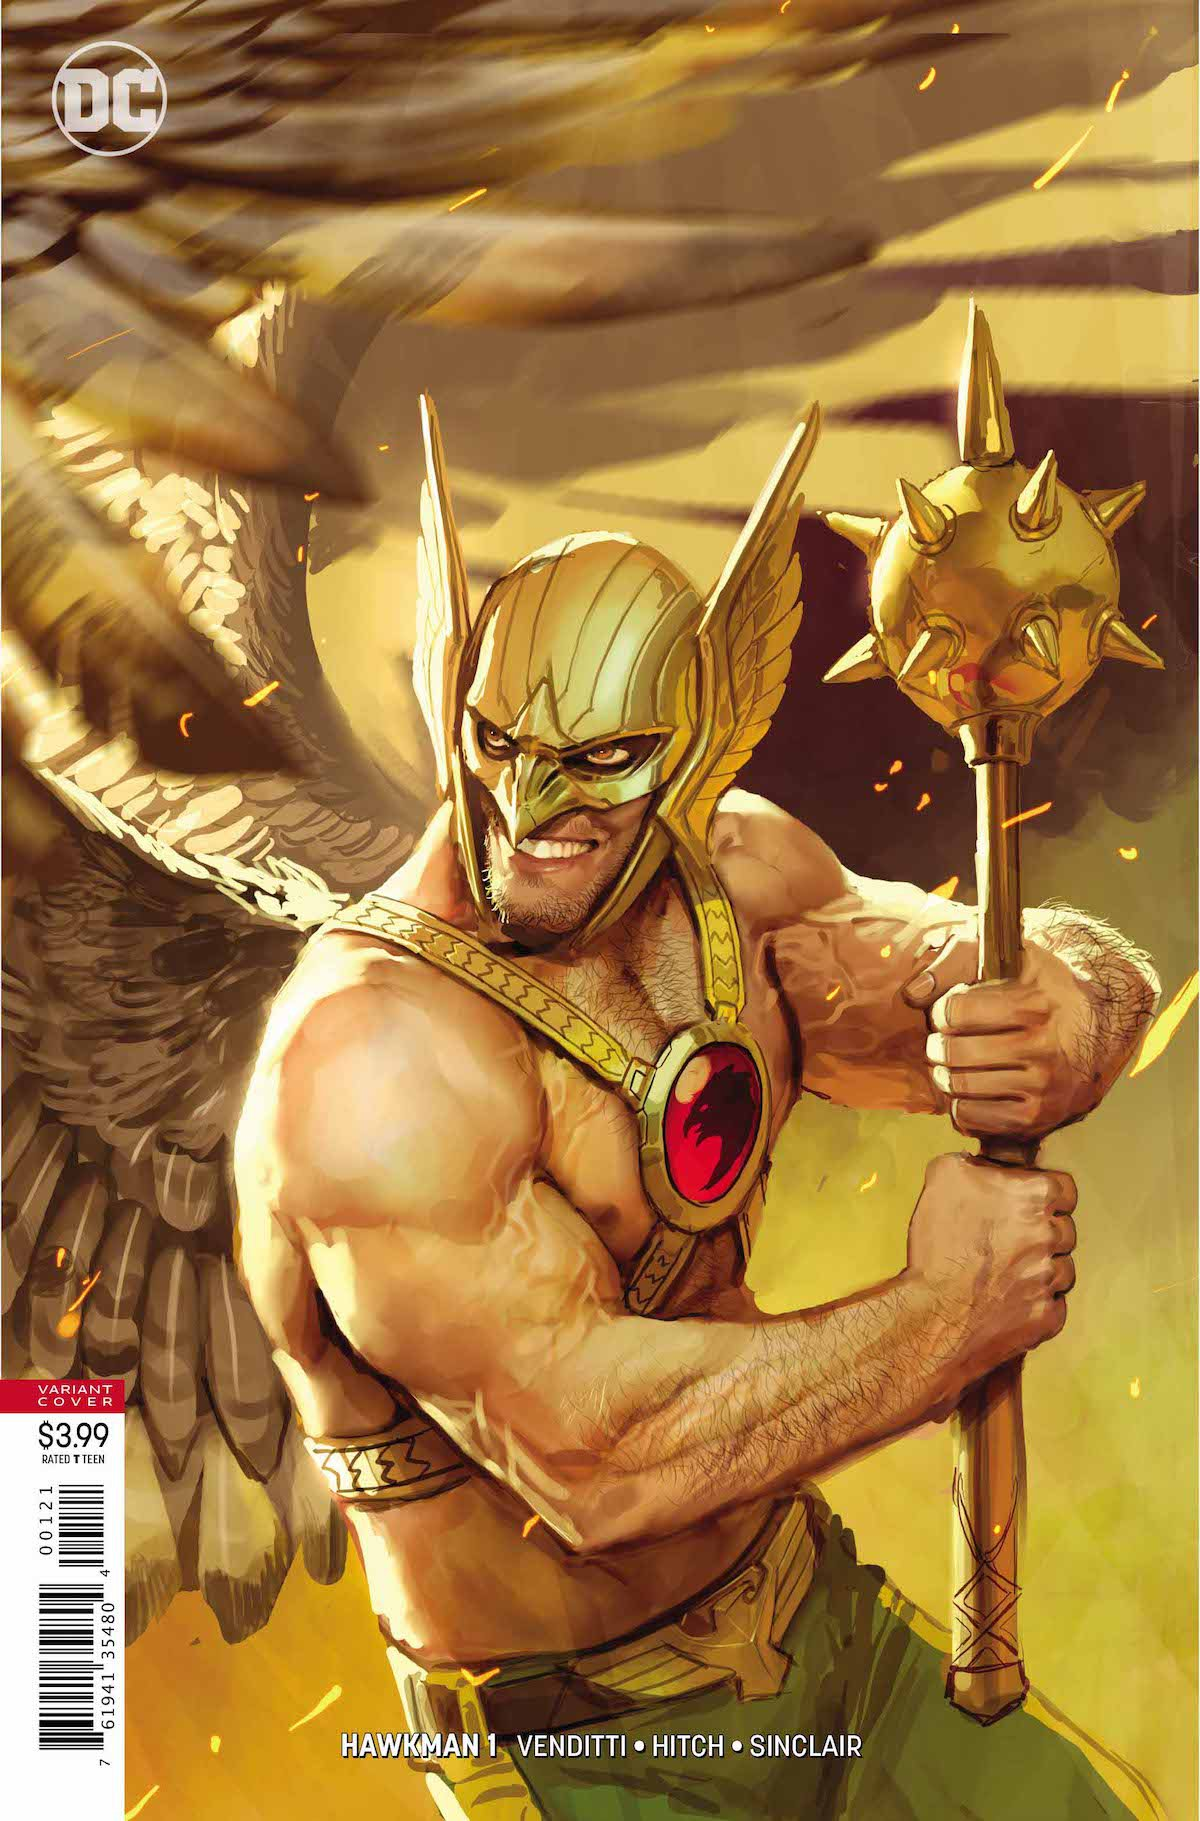 Hawkman #1 variant cover